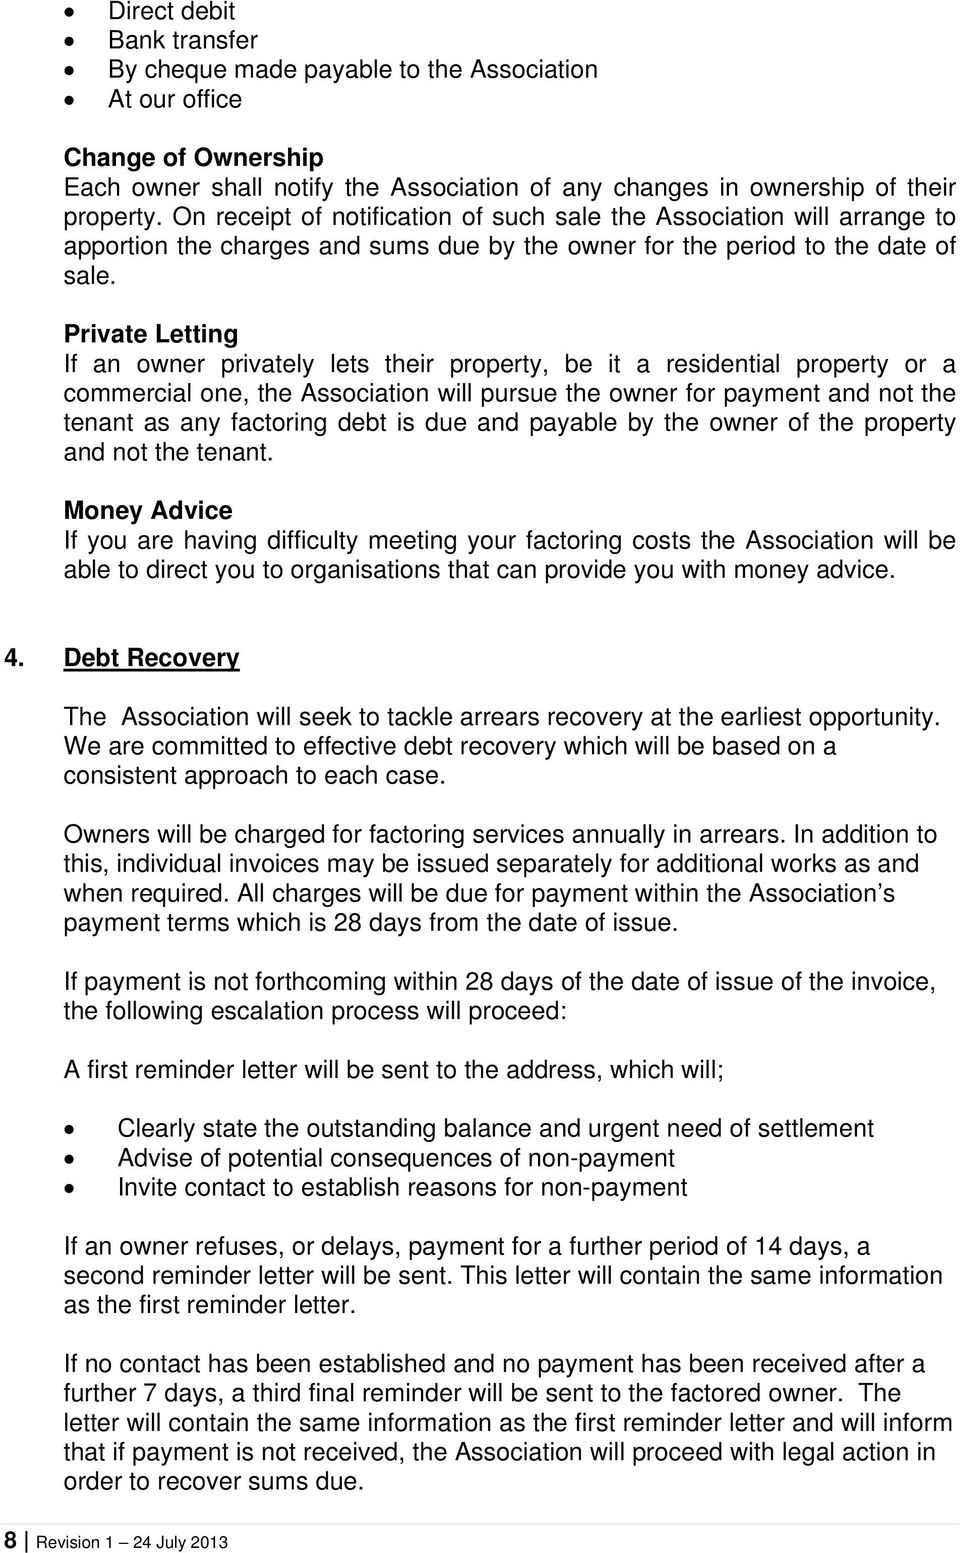 Private Letting If an owner privately lets their property, be it a residential property or a commercial one, the Association will pursue the owner for payment and not the tenant as any factoring debt